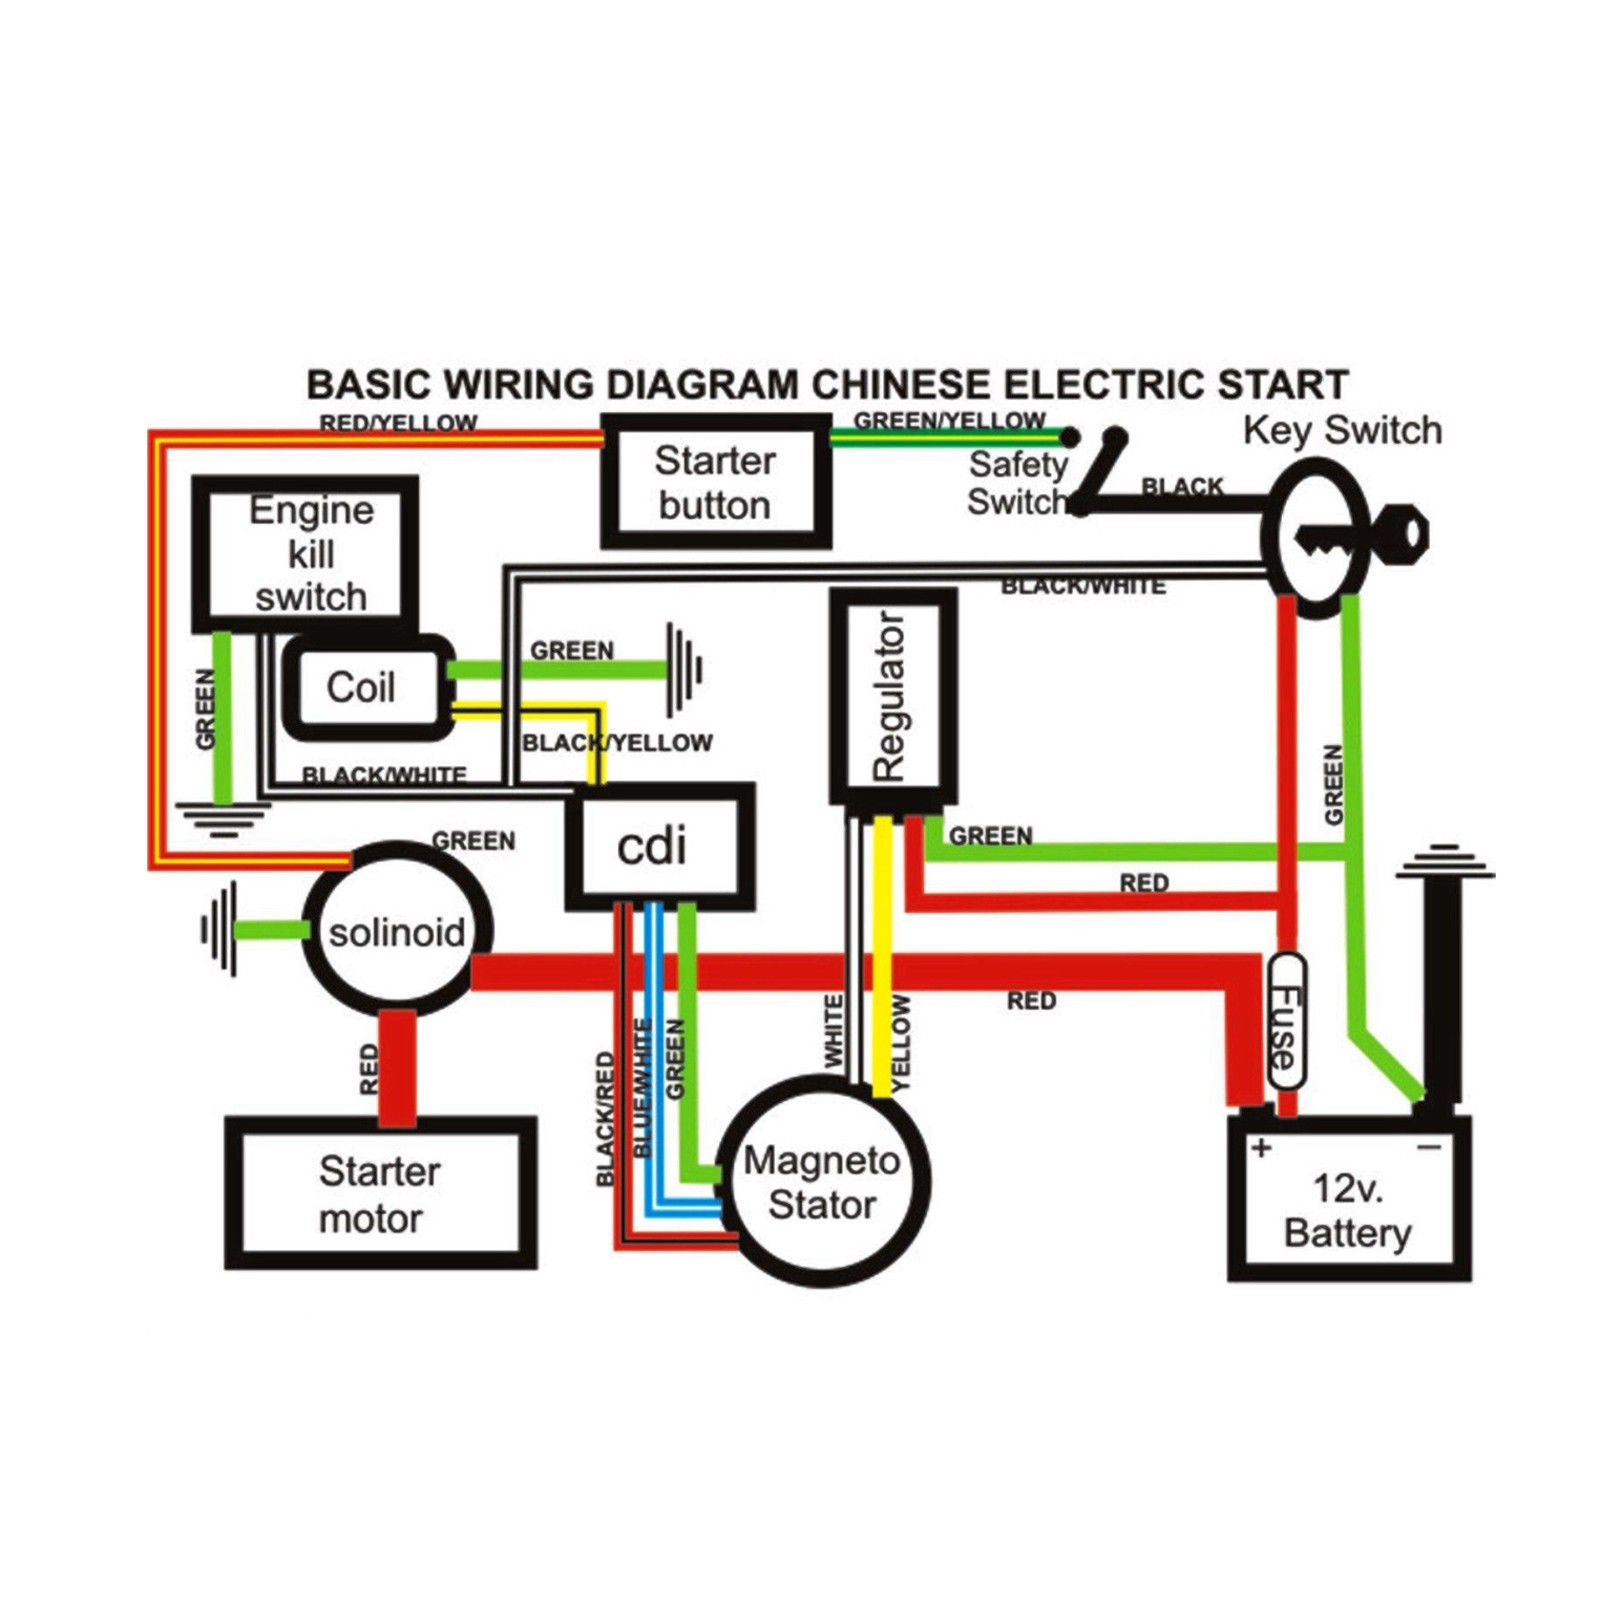 Atomic Dirt Bike 250 Wiring Diagram - Wiring Diagram on 200cc enduro dirt bike, lightest 250 dirt bike, zongshen 200 dirt bike, ktm electric dirt bike, ktm 70cc dirt bike, zongshen 125cc dirt bike black, baja warrior 90cc dirt bike, ktm 450cc dirt bike, baja 150cc dirt bike, zongshen motorcycle, loncin 110 dirt bike,